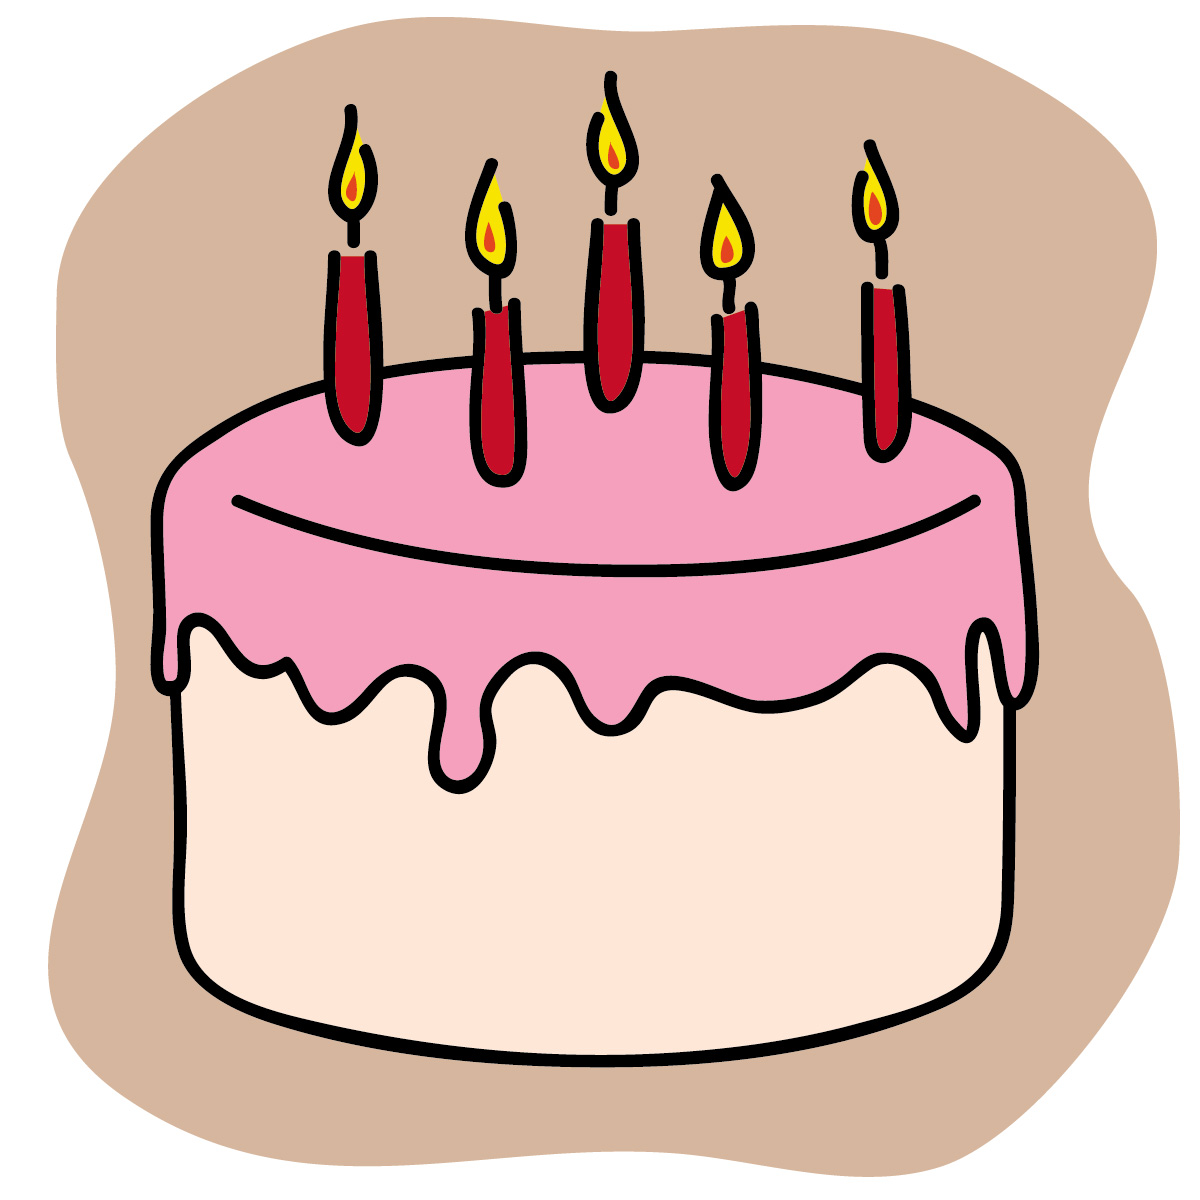 Free Birthday Cake Graphics, Download Free Clip Art, Free.